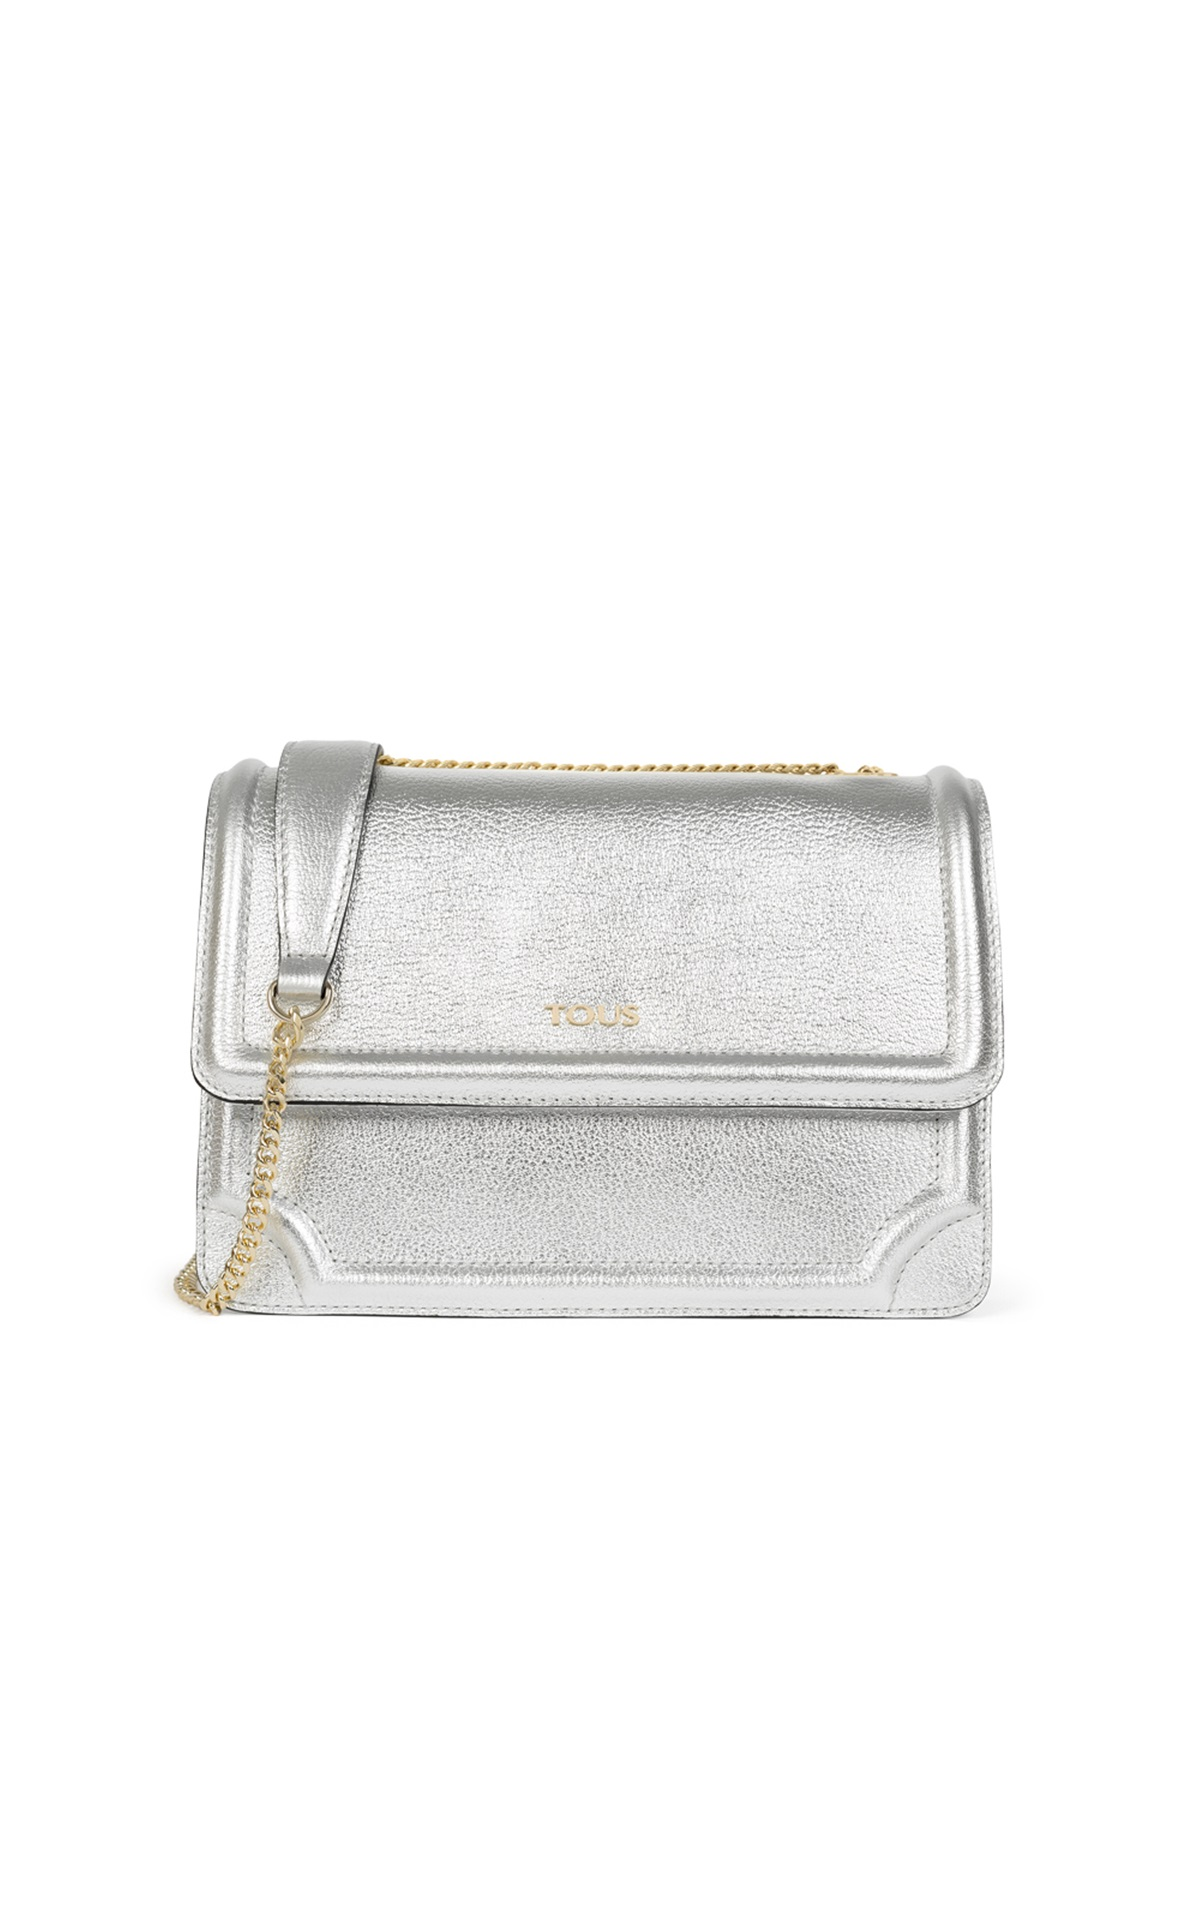 Silver leather crossbody bag Tous